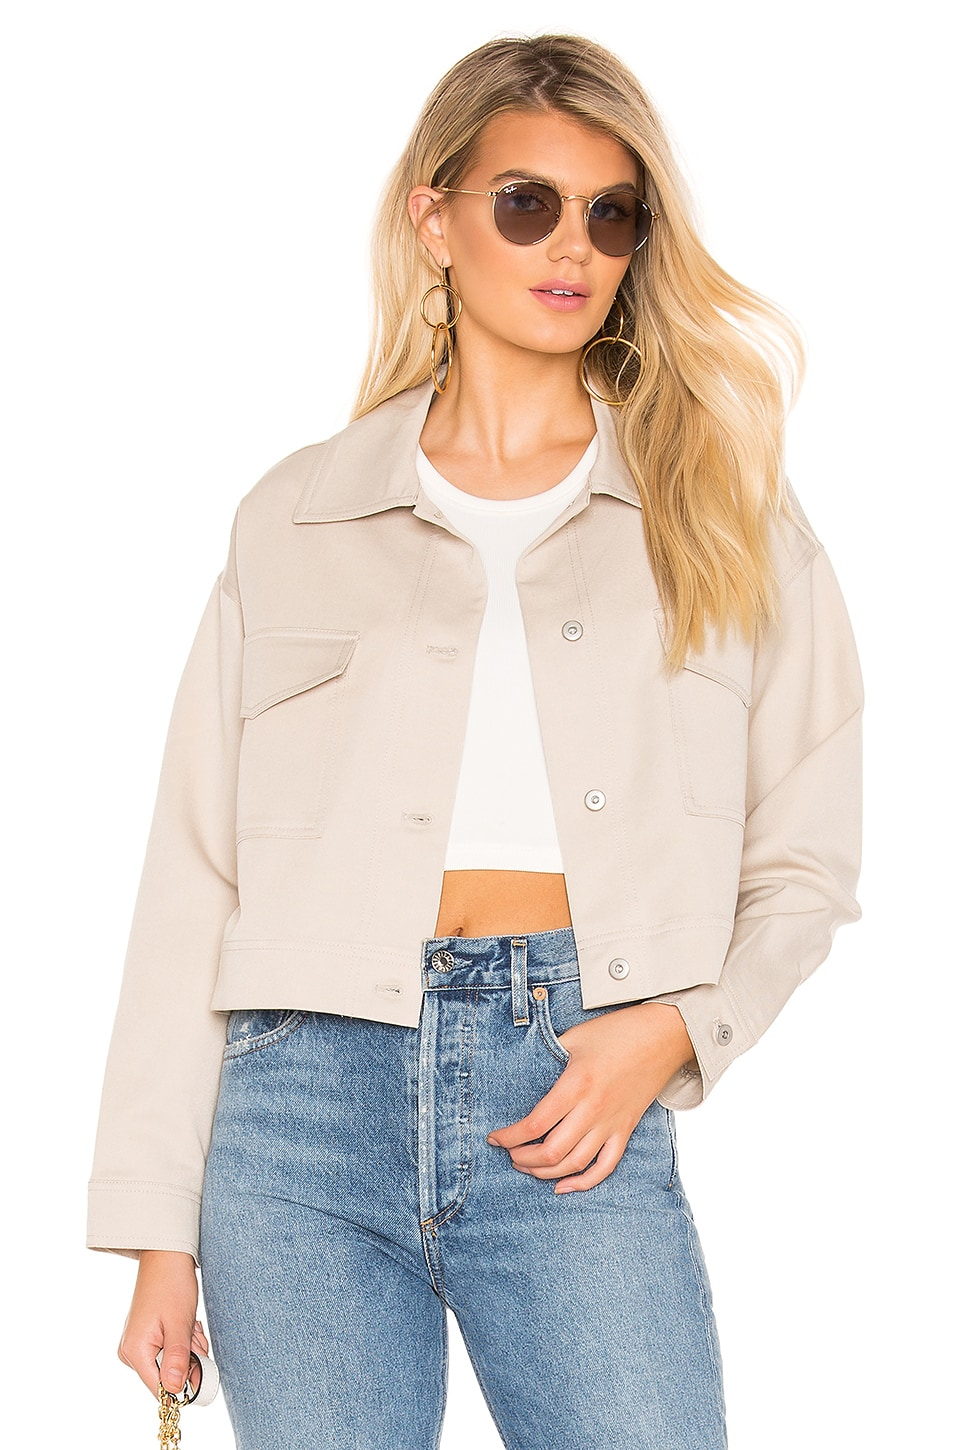 Tularosa Kennedy Jacket in Beige